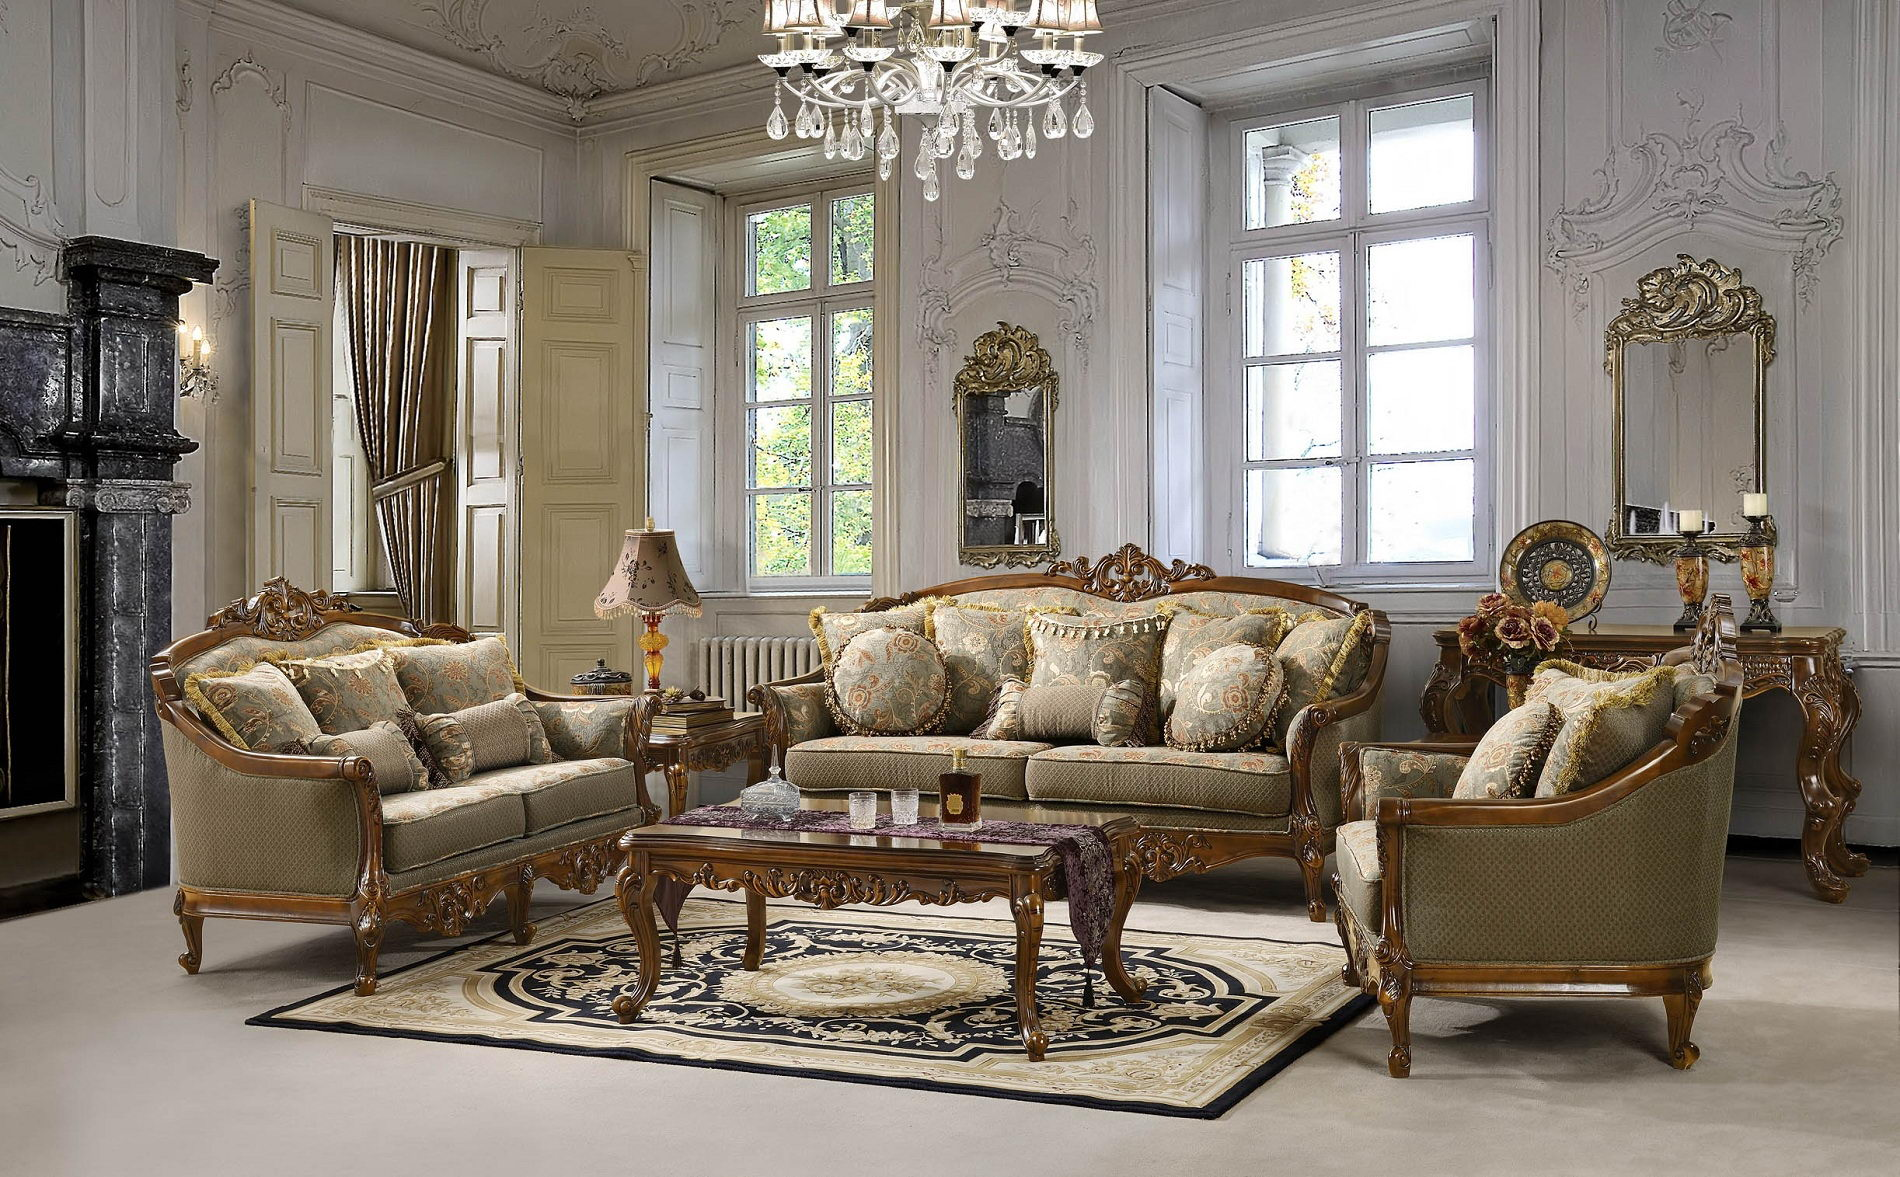 formal chairs living sofa ideas antique victorian curtains plans curt decor setup traditional accent into tables without style modern luxury sets fireplace decorating furniture